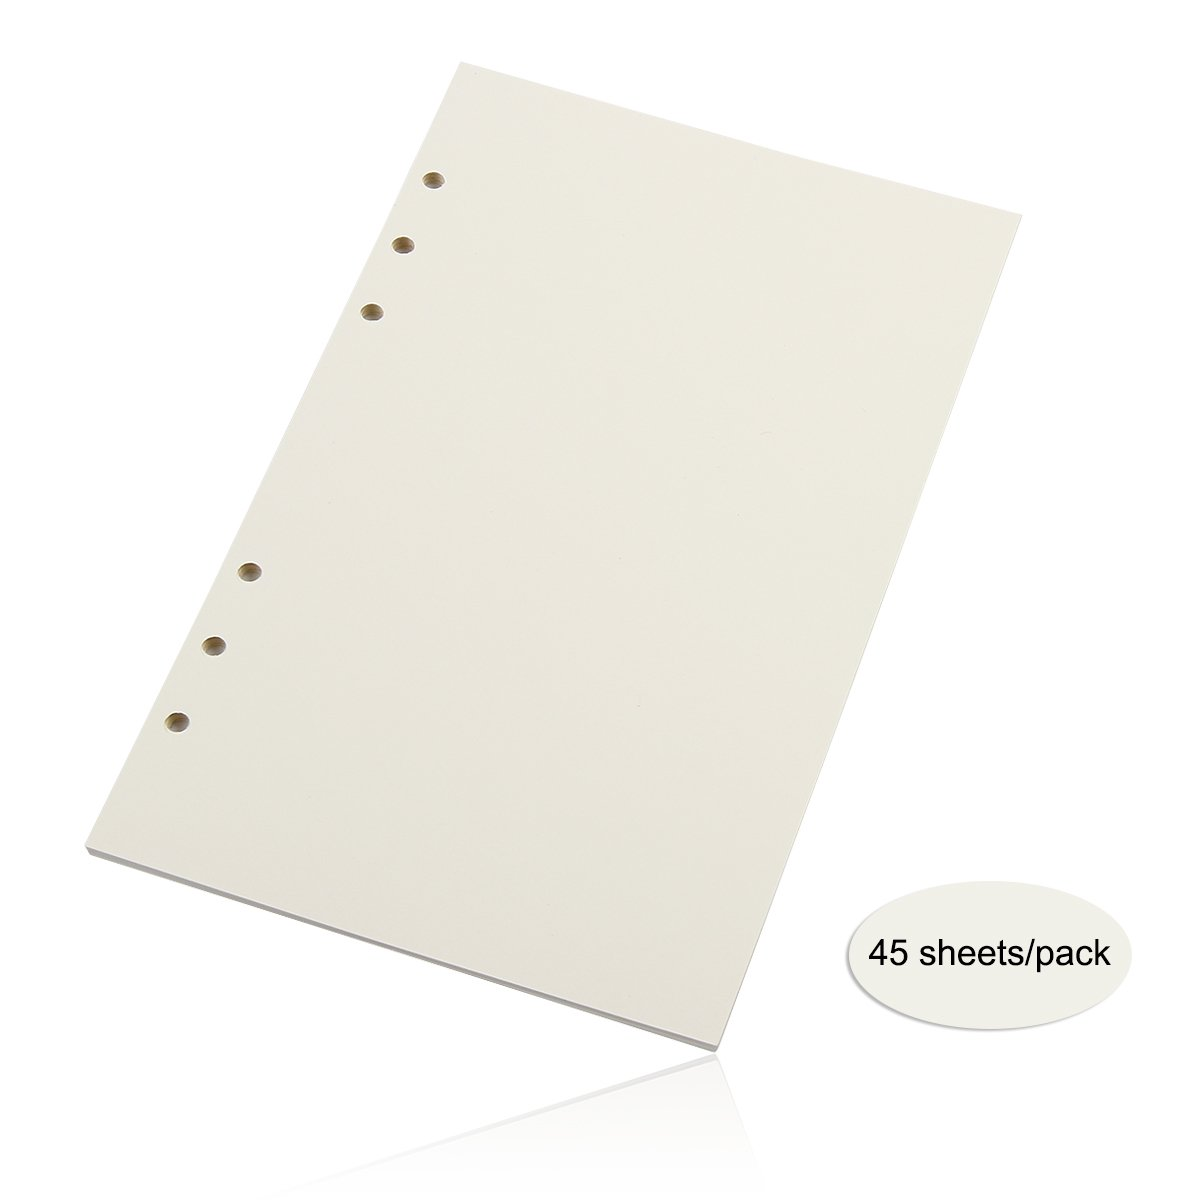 bouti1583 3 Pack of Refills Paper 6 Holes A5 8.3 X 5.6 Inches for Binder Loose Leaf Notebook, 45 Sheets/ 90 Pages Per Pack, Blank White Paper